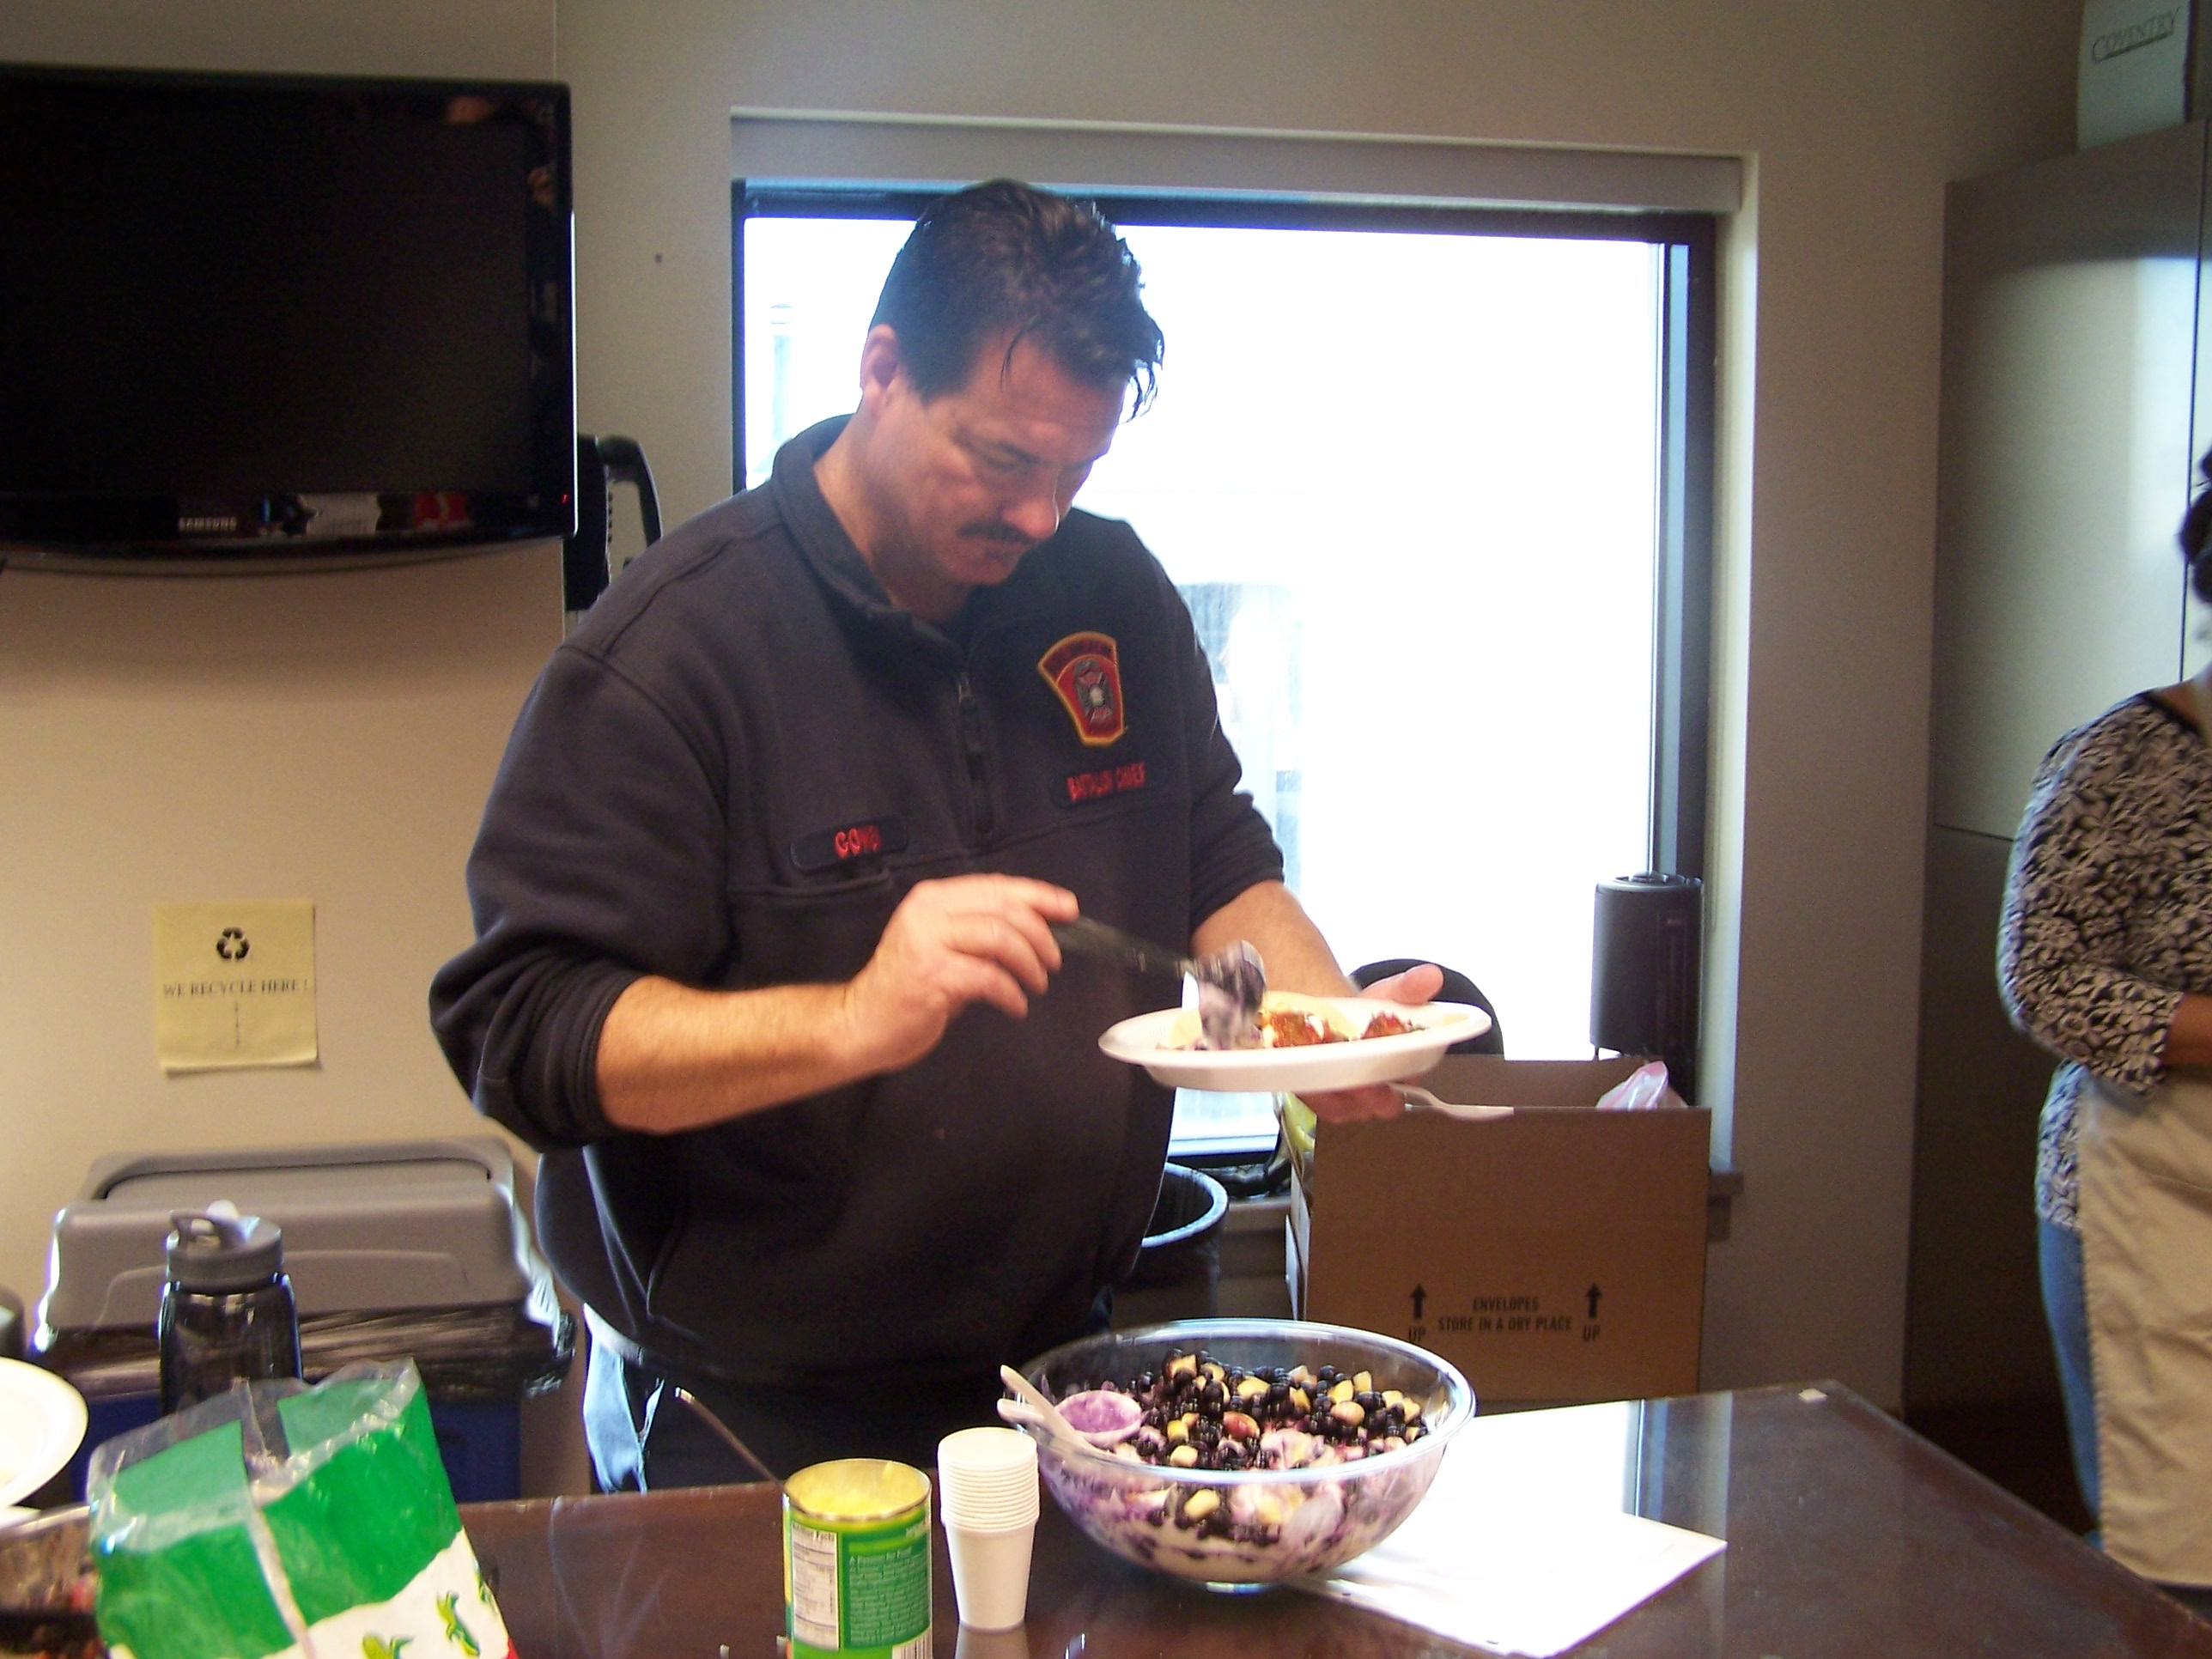 A staff member serves up a portion of the breakfast parfait.